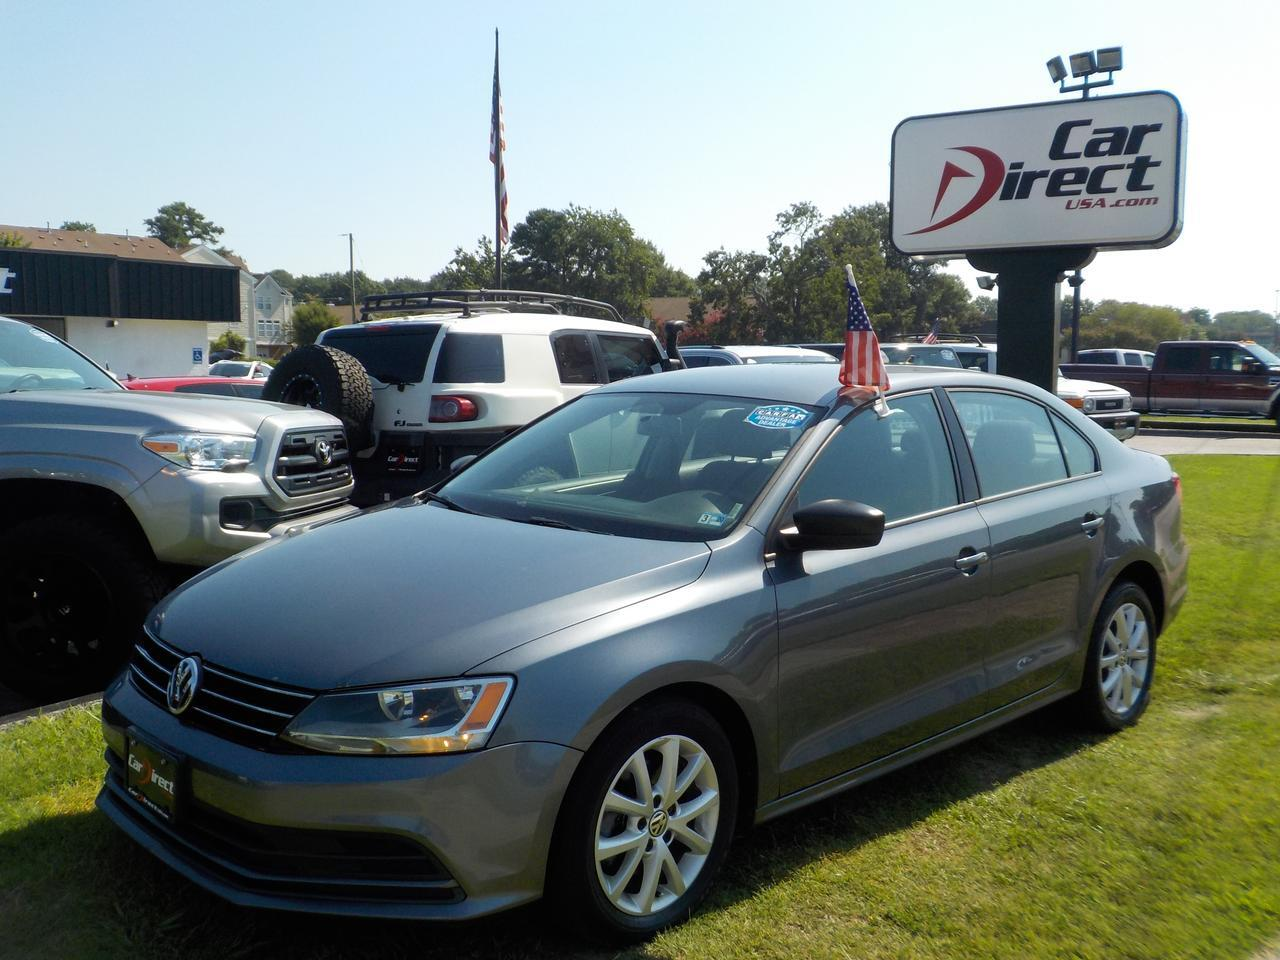 2015 VOLKSWAGEN JETTA SE, WARRANTY, KEYLESS ENTRY AND START, ONLY 70K MILES!